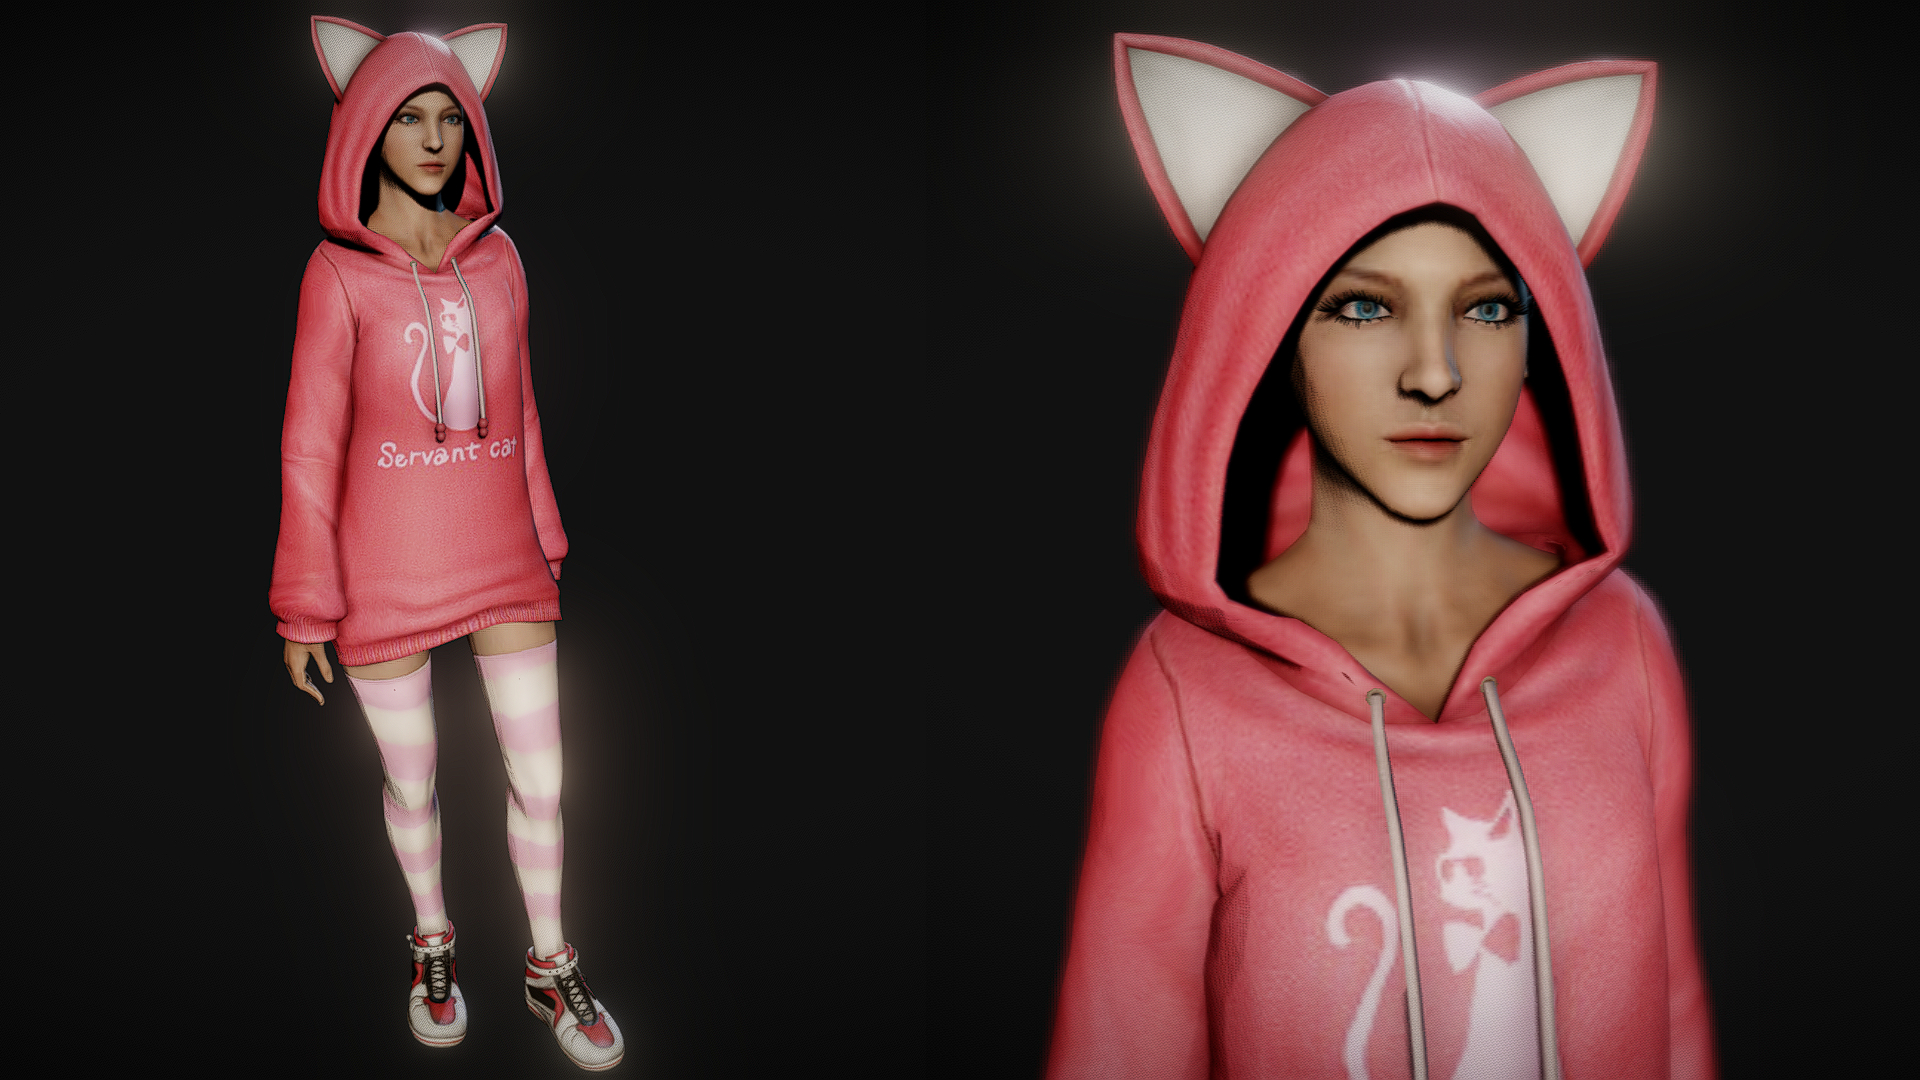 Amazing Player: Female (cat costume) 0